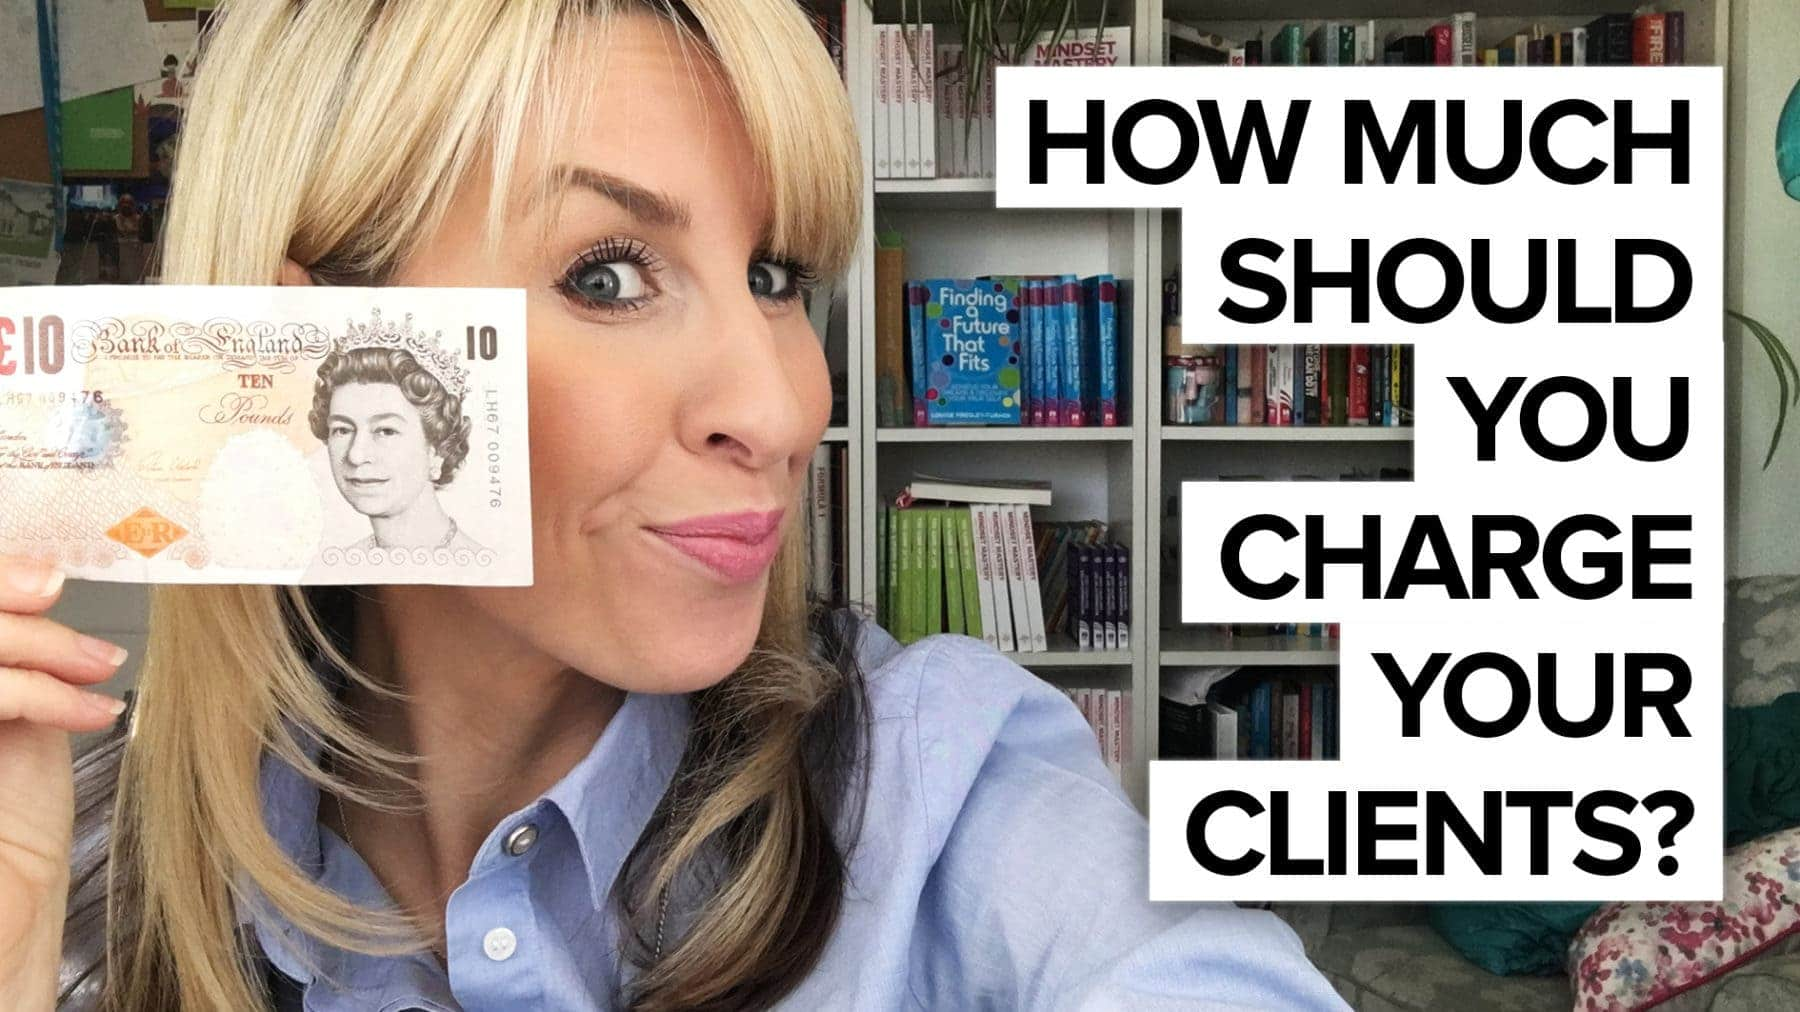 How Much Should You Charge Your Clients?